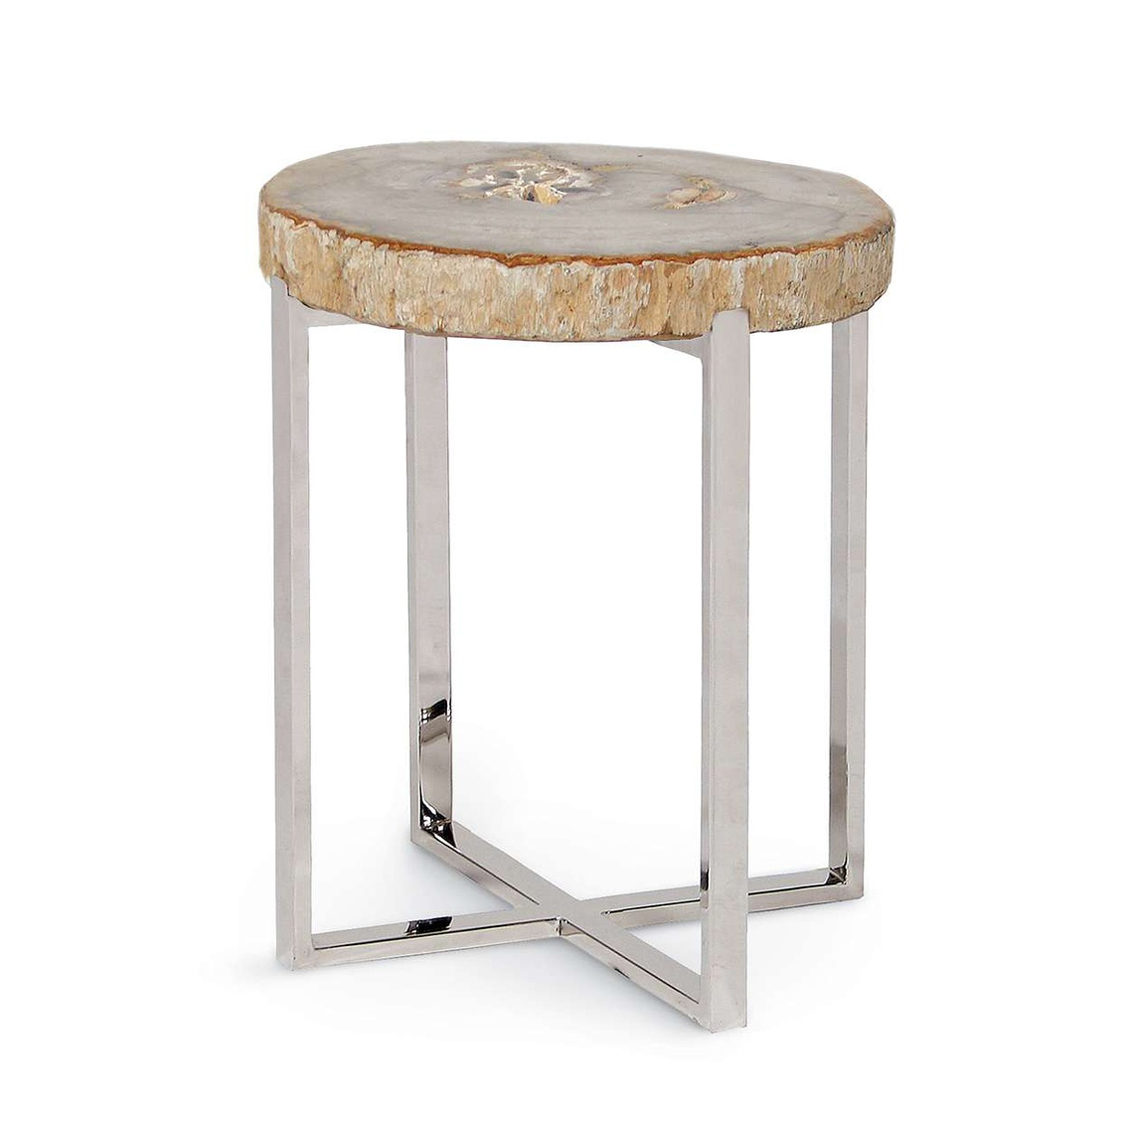 natural artistry accent table with stainless steel legs small very drum hardware chrome bedside lamps yellow home accents triangle oval entry bar tables for unique decor white mid